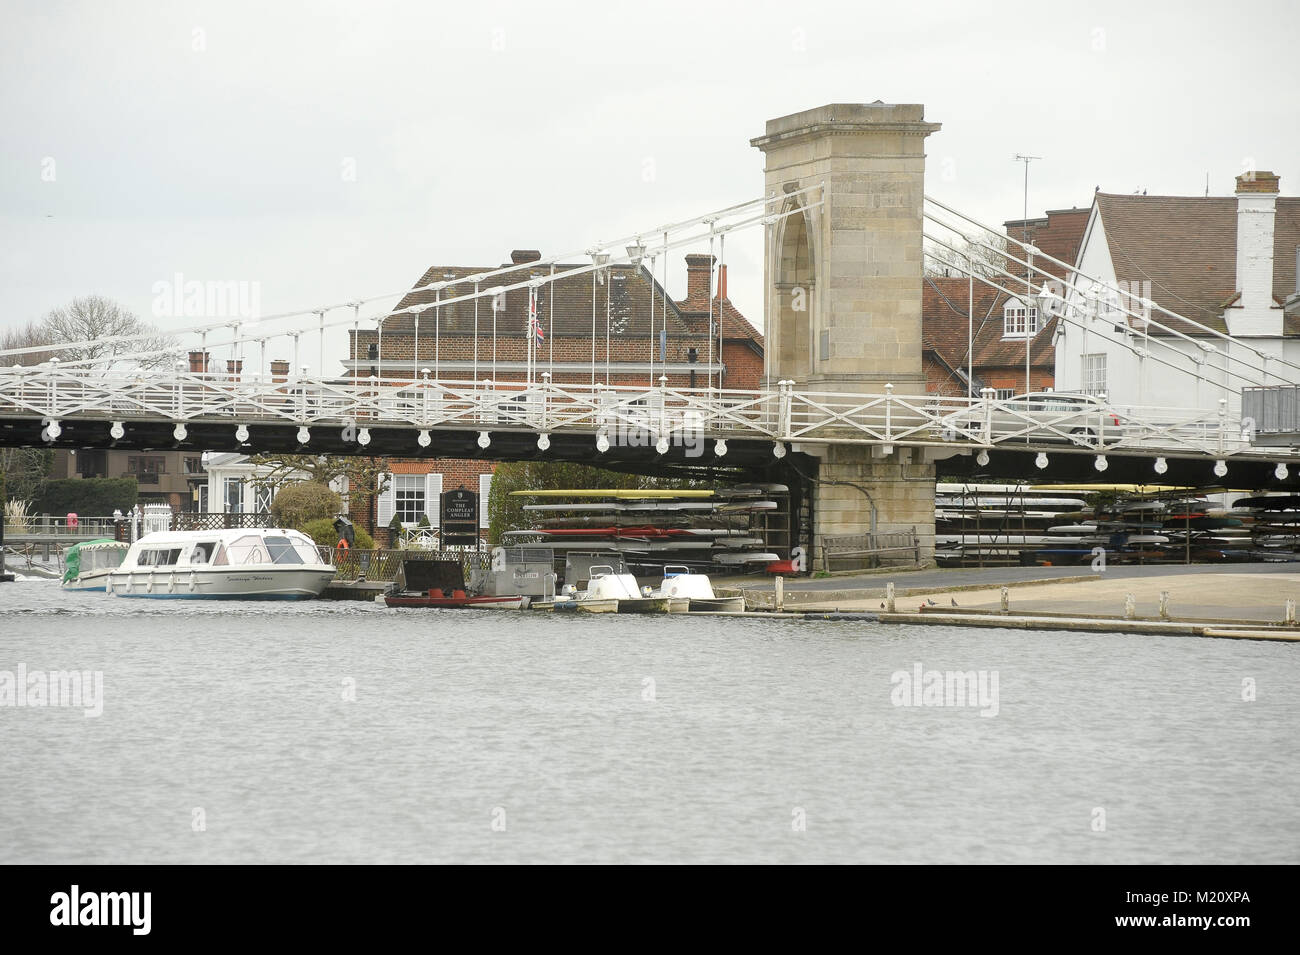 Suspension bridge Marlow Bridge designed by William Tierney Clark in XIX century on River Thames in Marlow, Buckinghamshire, Stock Photo